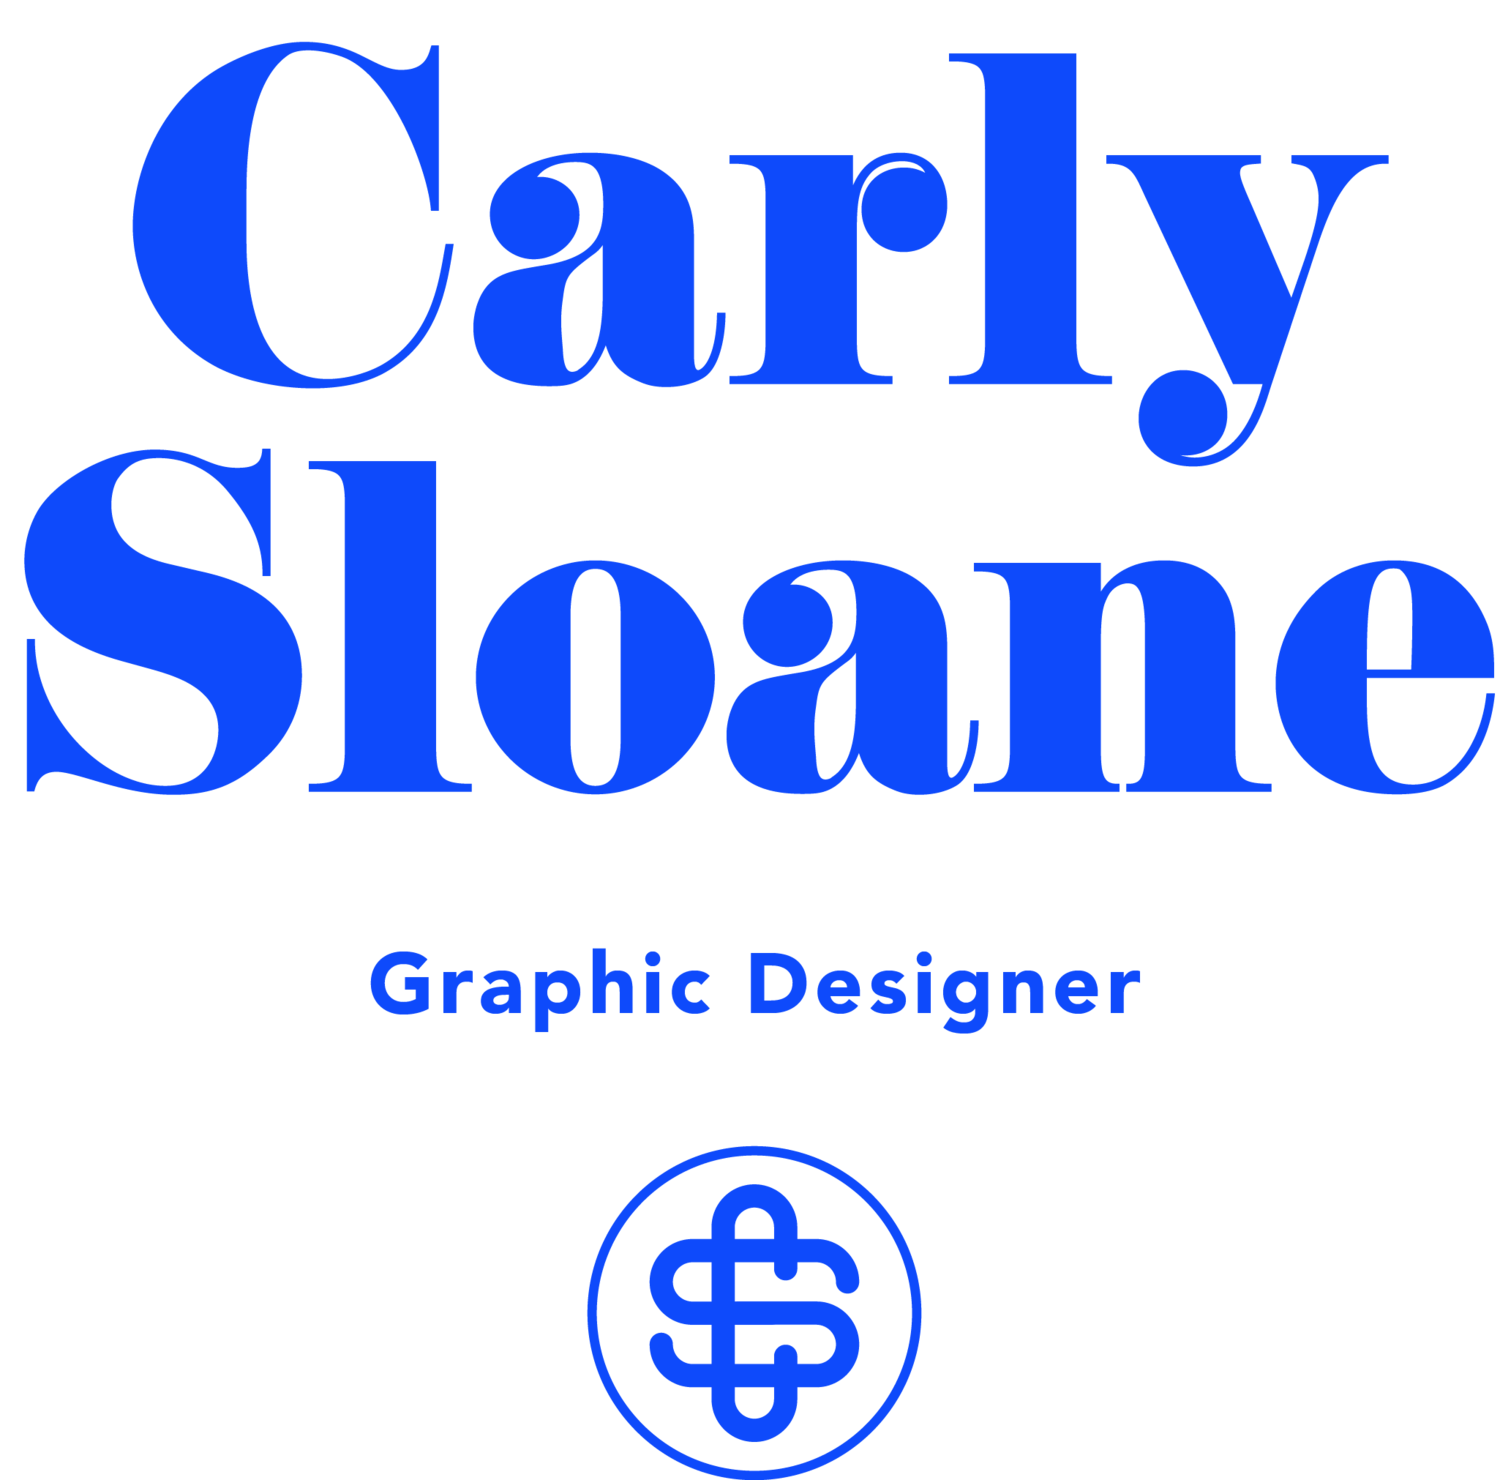 Carly Sloane Design